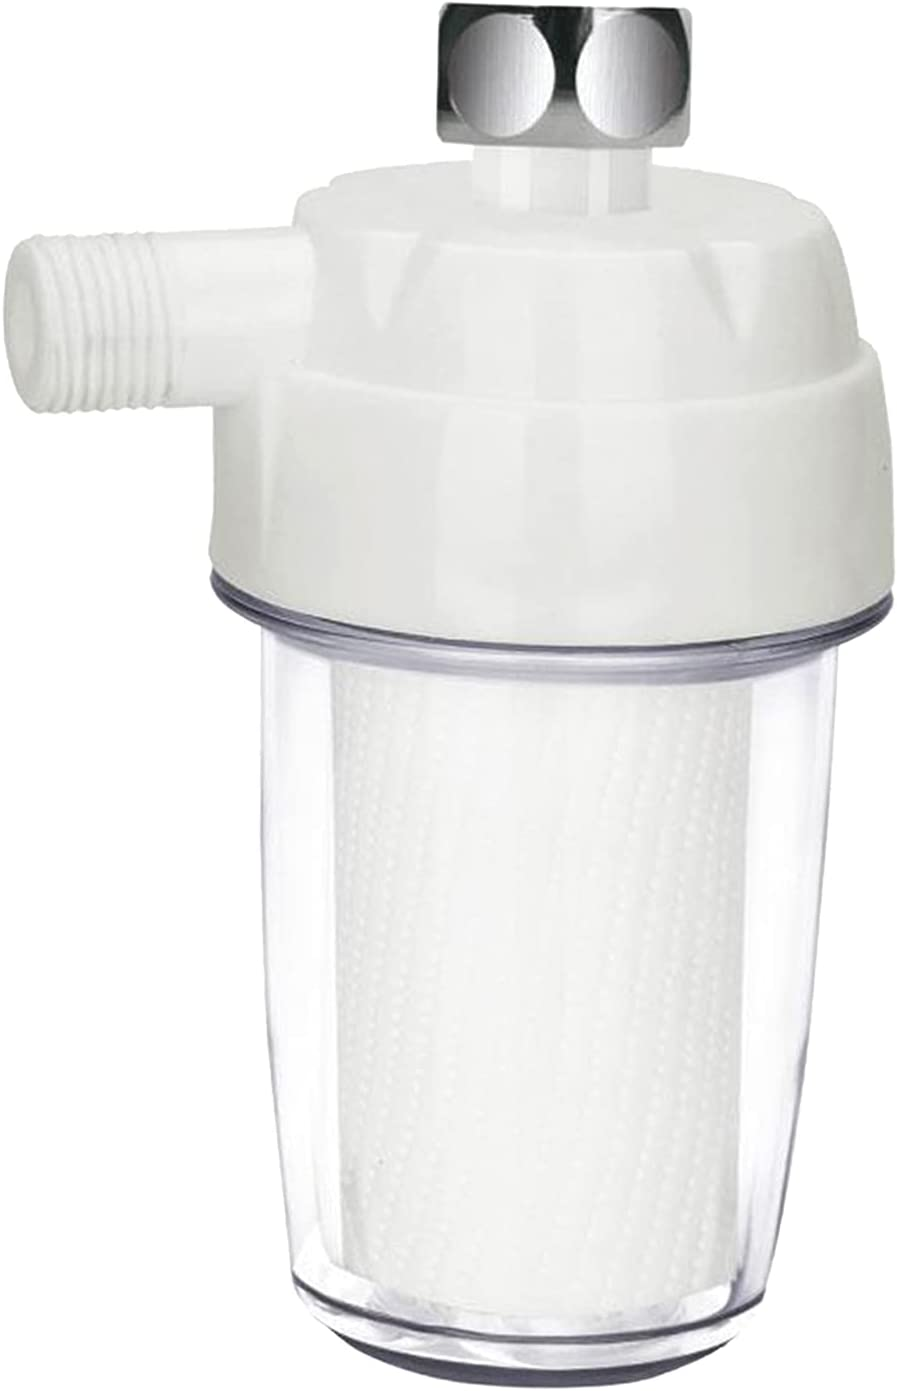 Nobranded Shower Time sale Water Filter Chlo Max 53% OFF Cartridge Chemicals Reduces